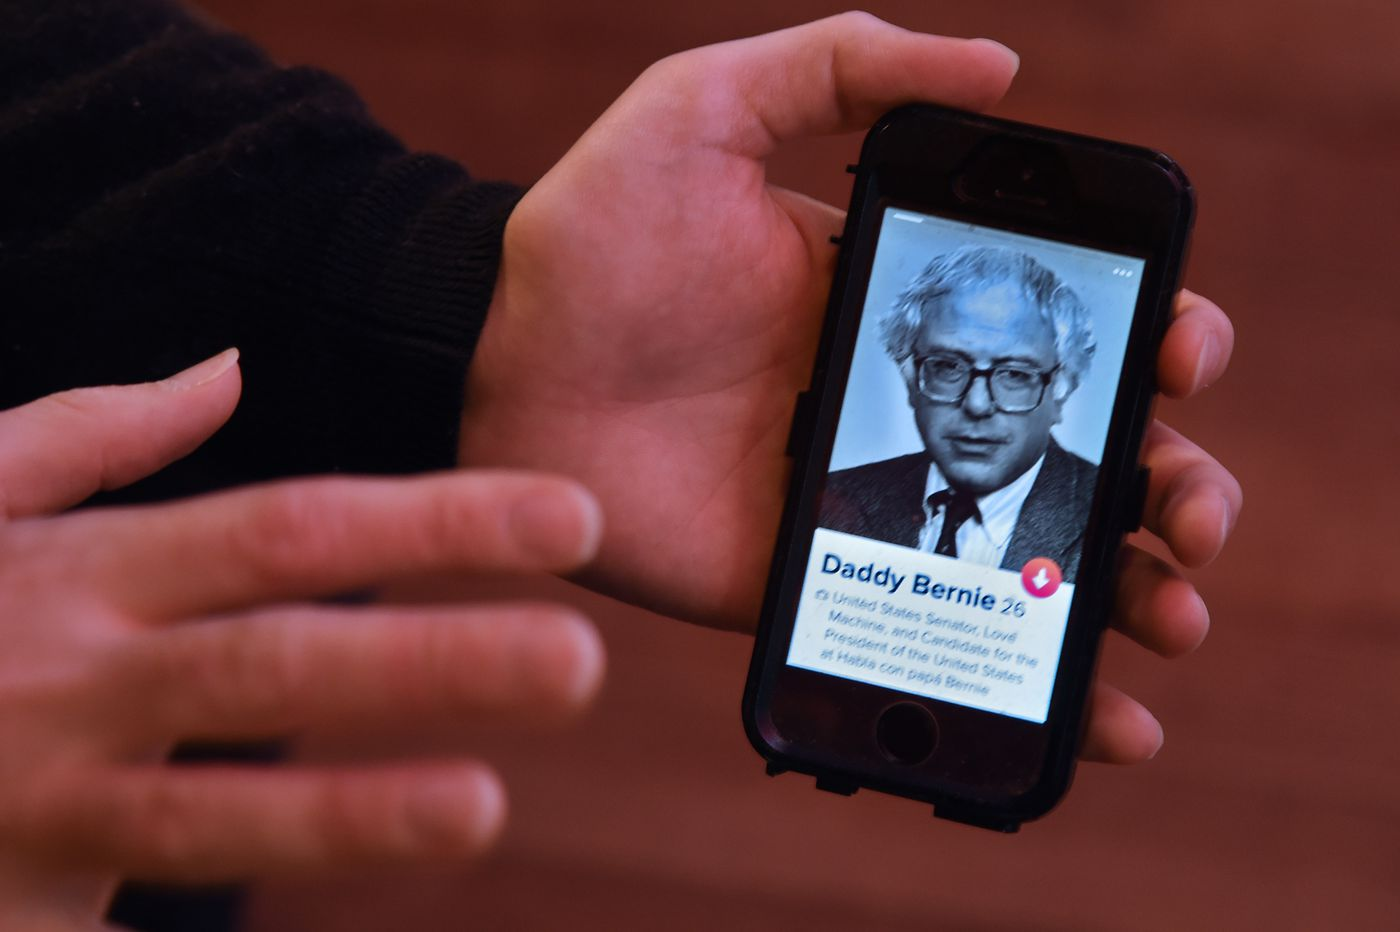 'Daddy Bernie' is on Philly Tinder, and he wants you to swipe right for Bernie Sanders